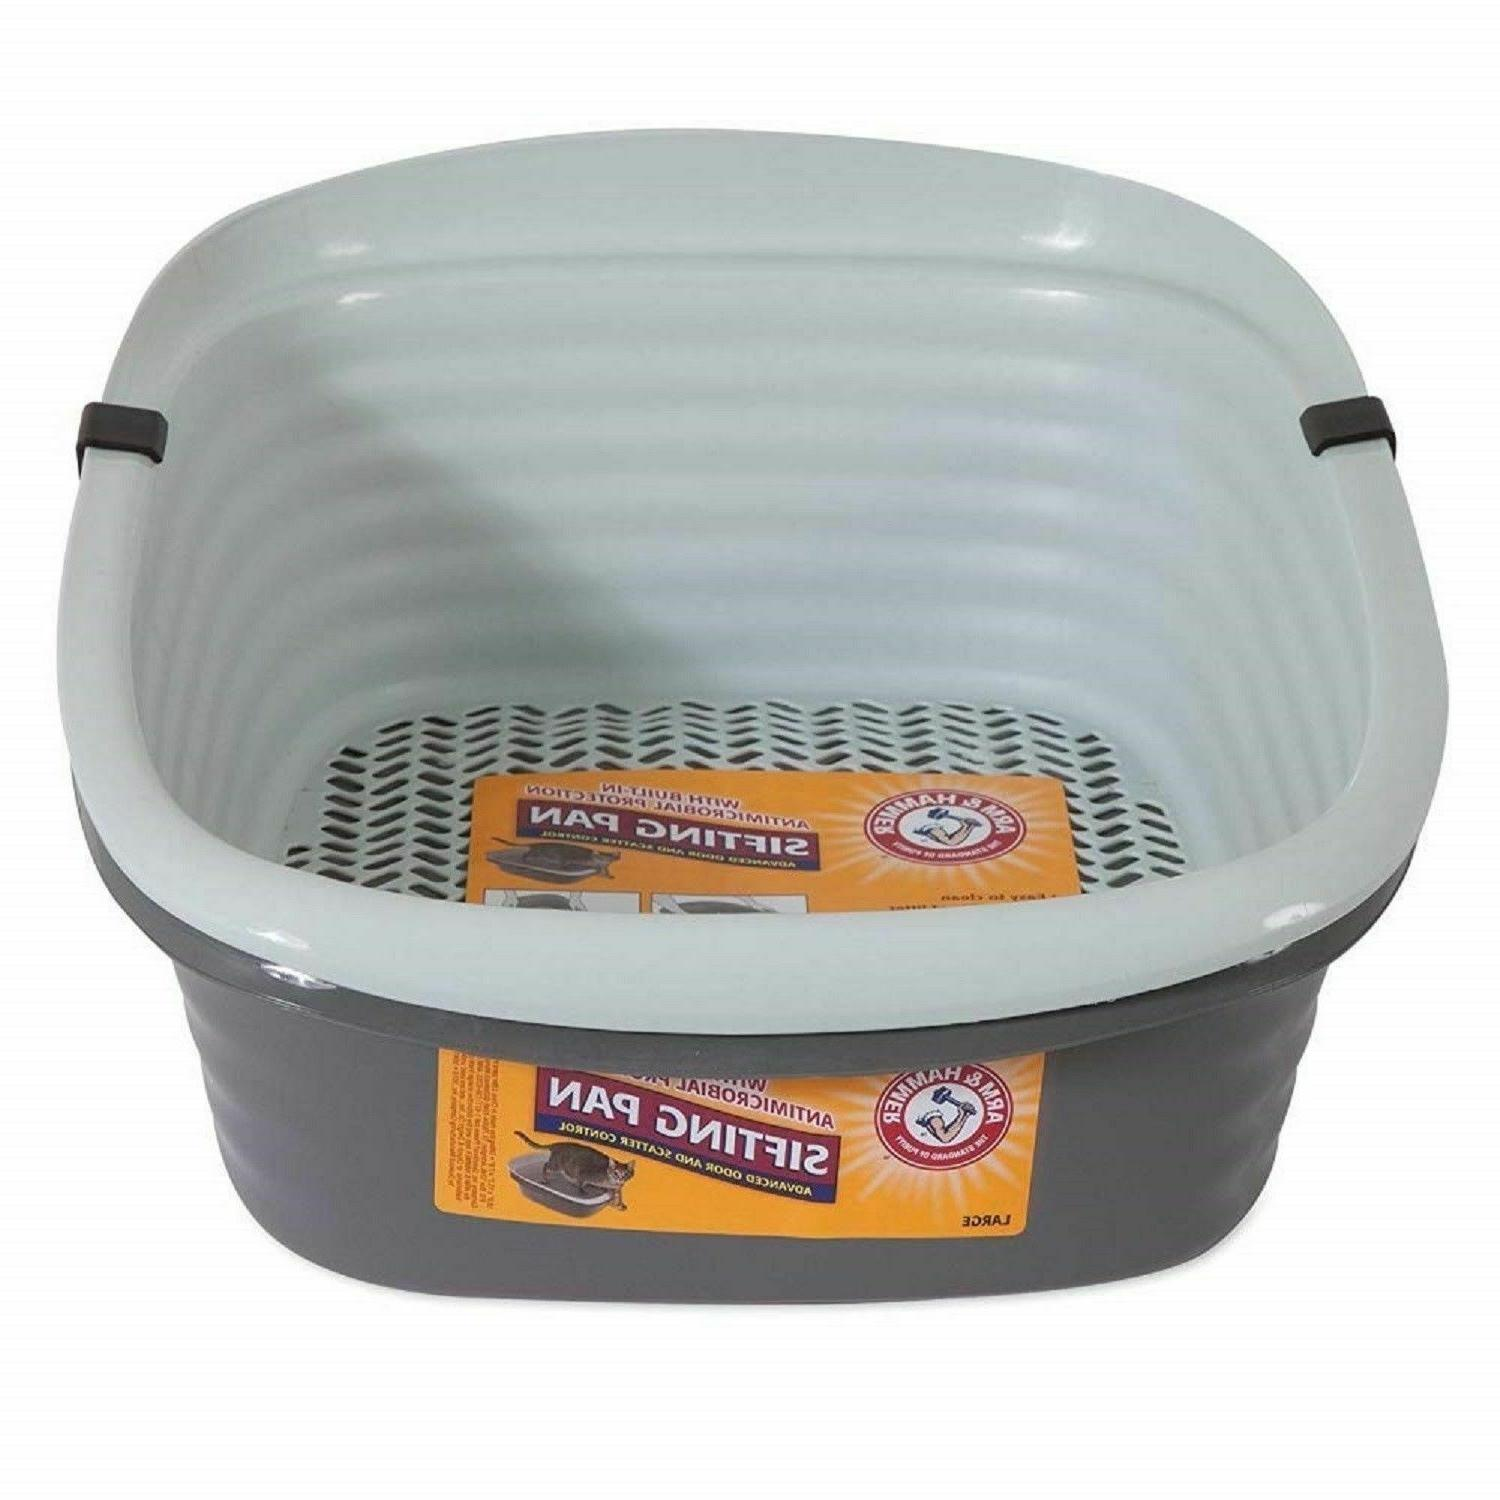 SIFTING LITTER Large Cleaning Kitty Tray